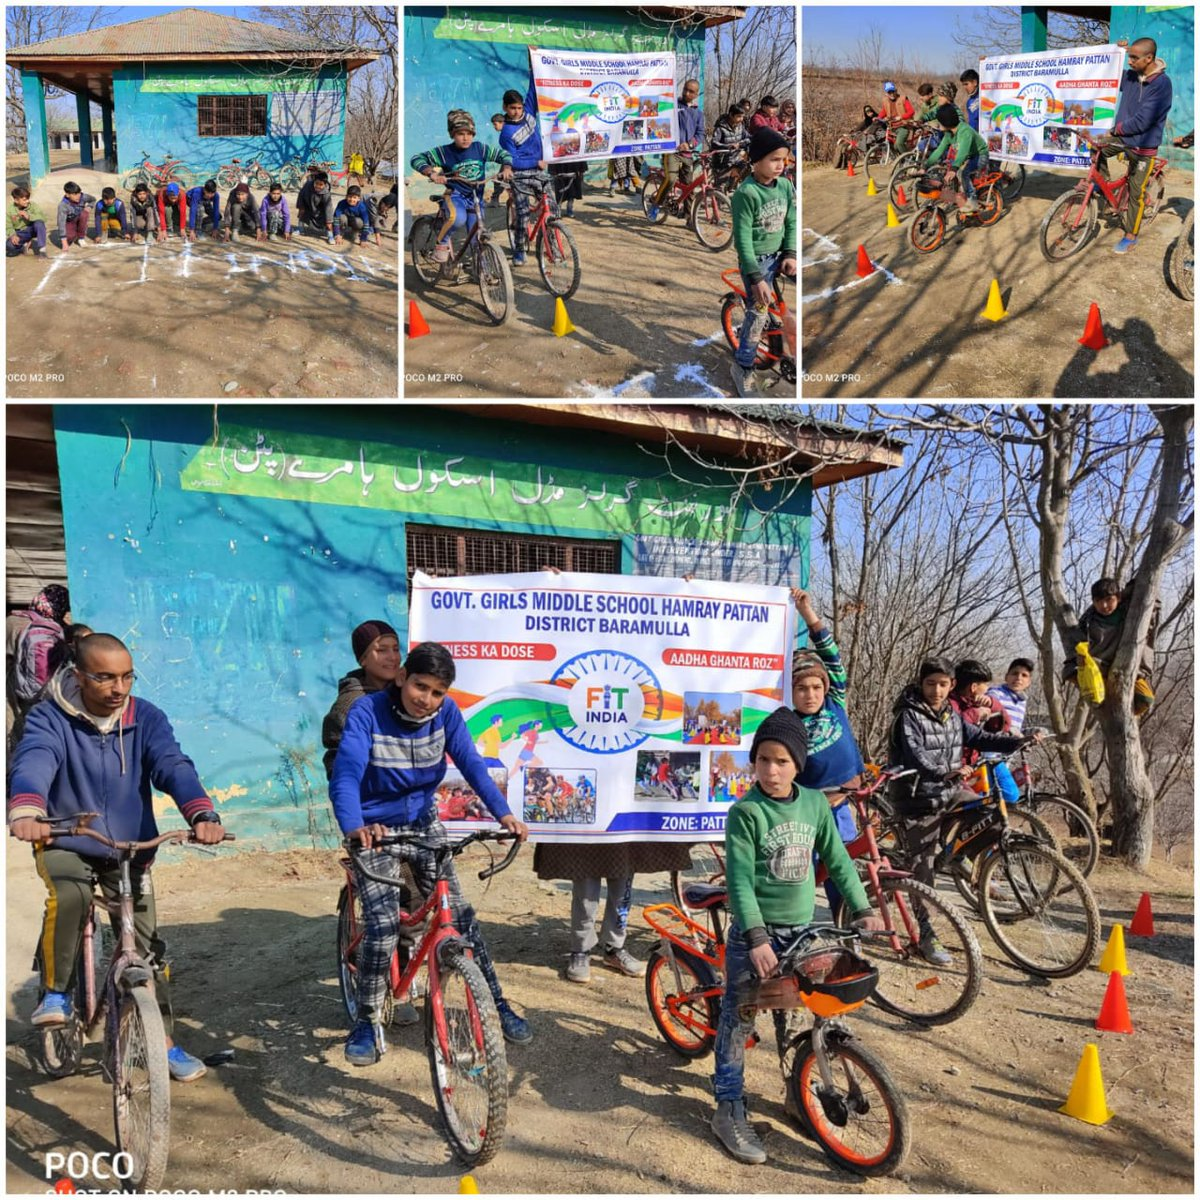 Wonderful to see children from Government School, Baramulla, J&K also participating in India's biggest Cycling event! 🚴  Register now for the event ➡️   #newindiafitindia   @KirenRijiju @IndiaSports @Nyksindia @_NSSIndia @PIB_India @OfficeOfLGJandK @DGSAI